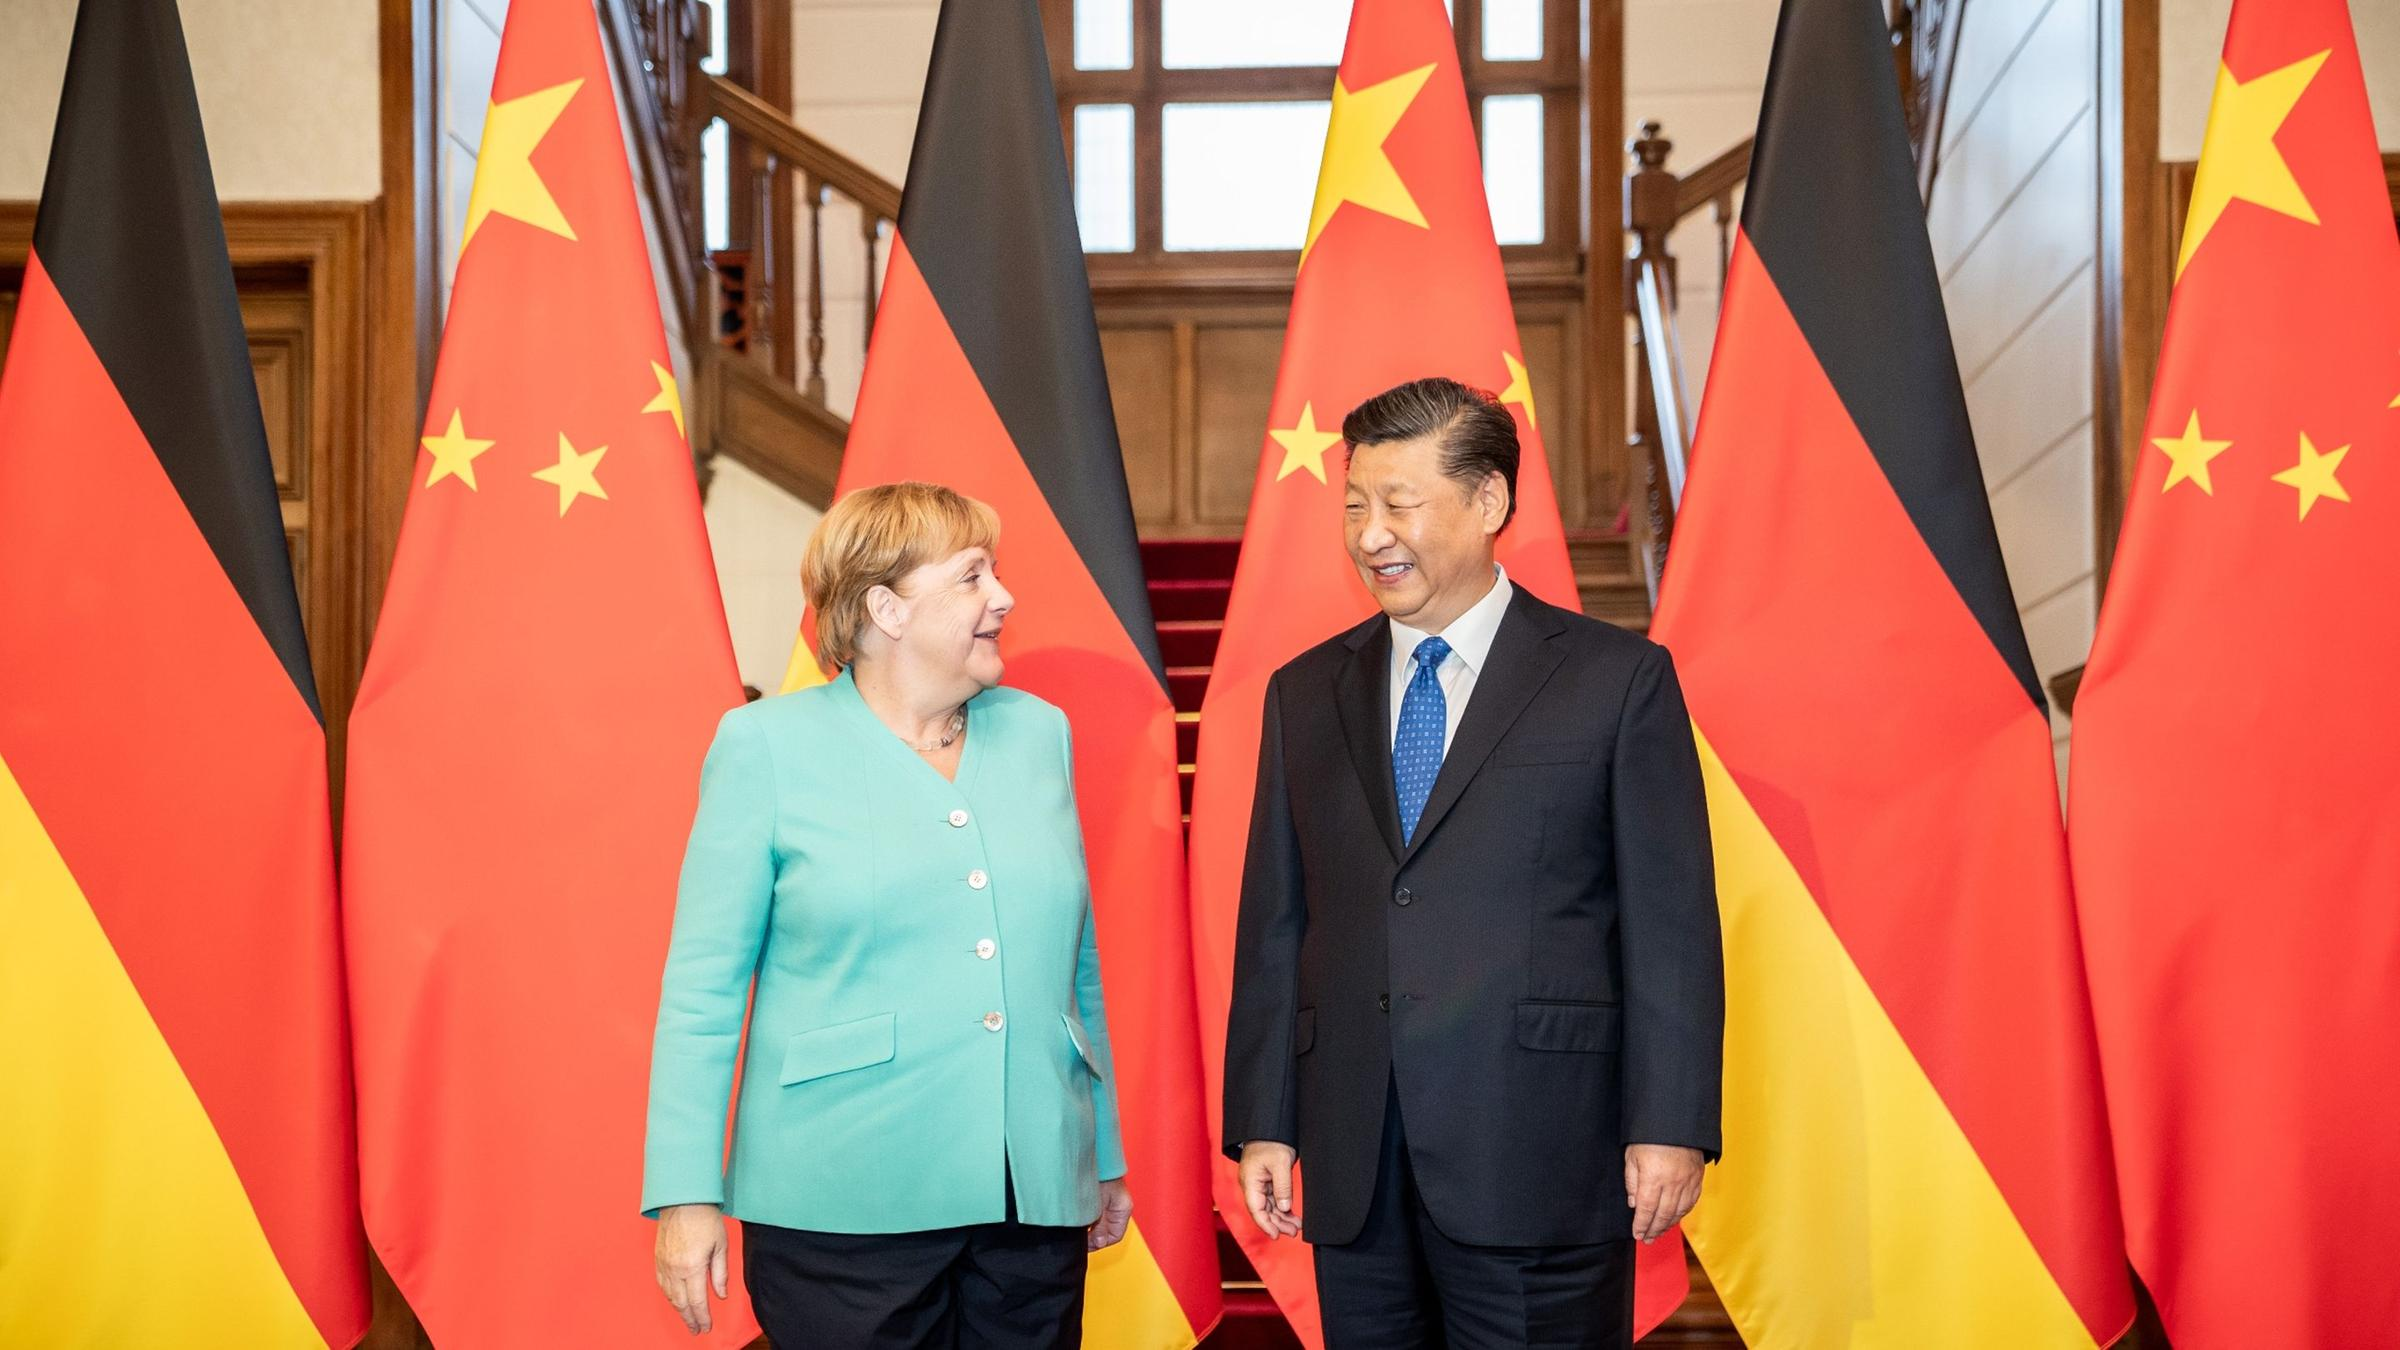 Merkel and Xi in phone conversation: China, Germany, EU work together to create more global certainty